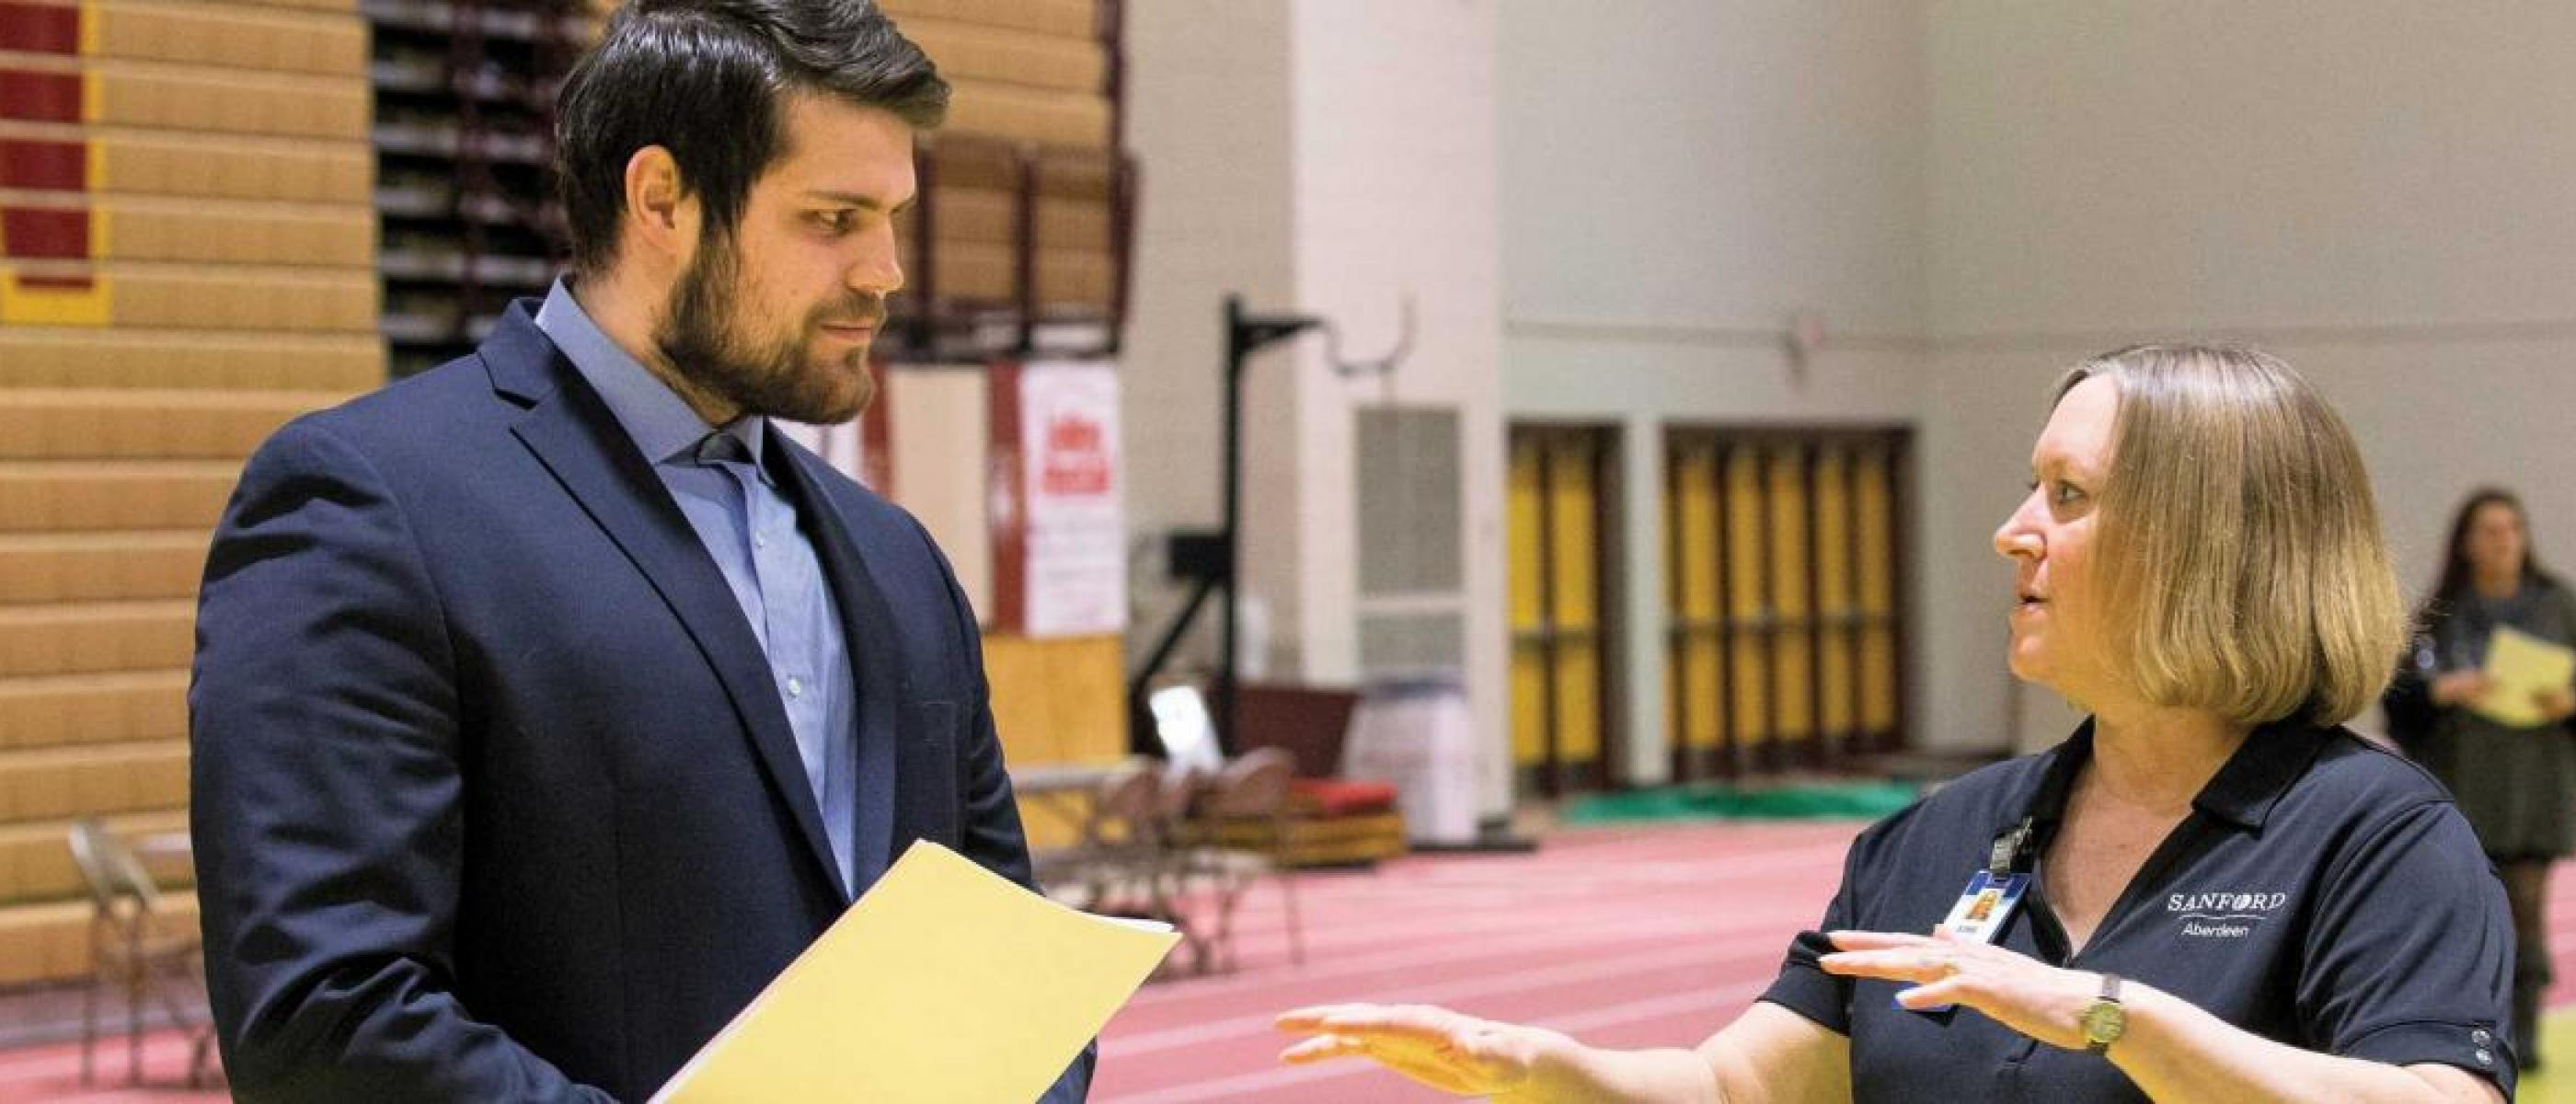 Student holding file talking to employer in athletic arena